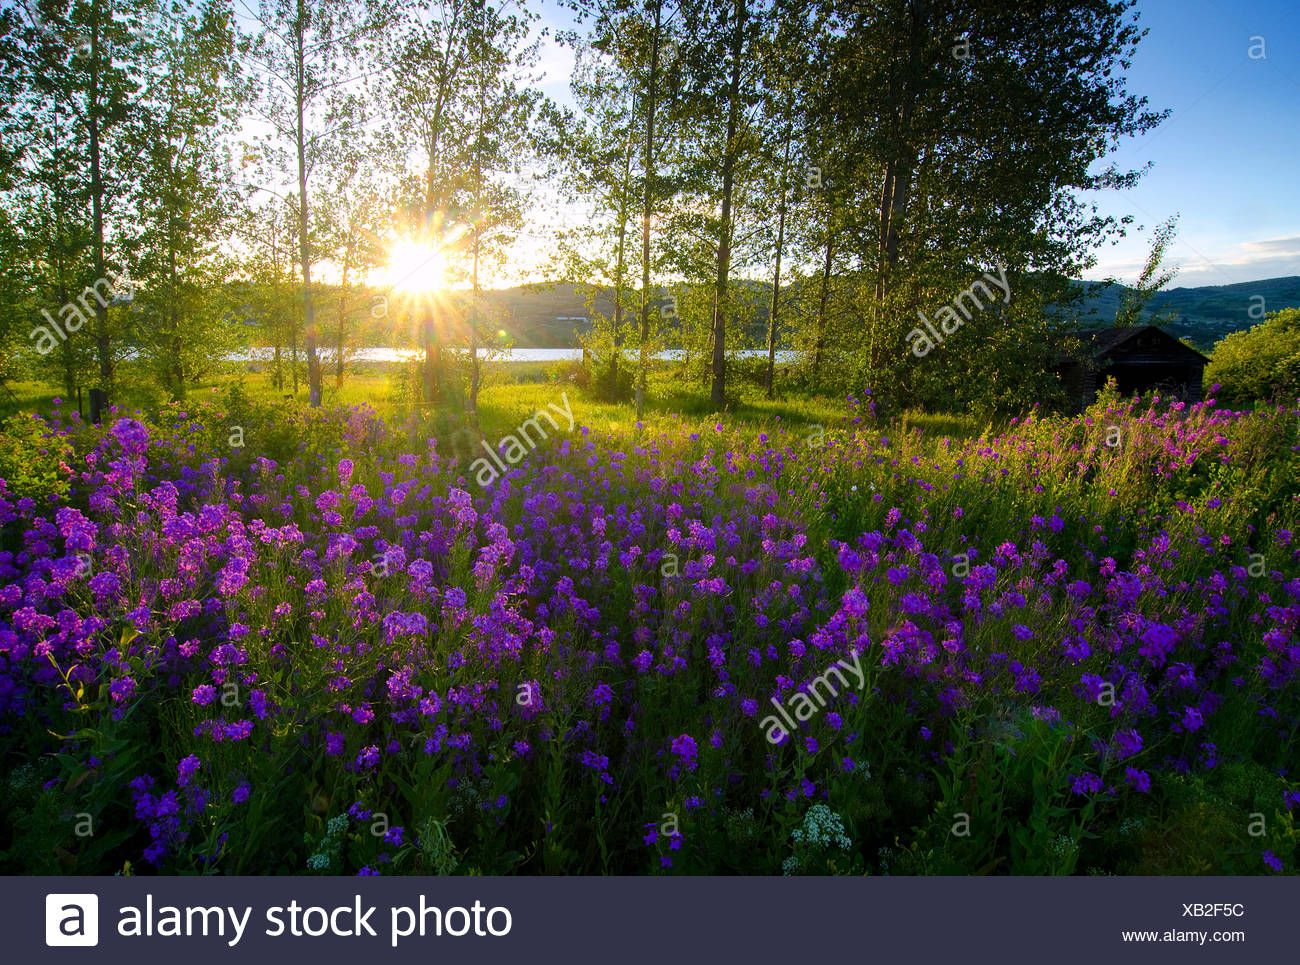 Hesperis matronalis (Dames Rocket) in full bloom as they soak in the late spring sun alongside Swan Lake in Vernon in the Okanagan region of British Columbia, Canada - Stock Image